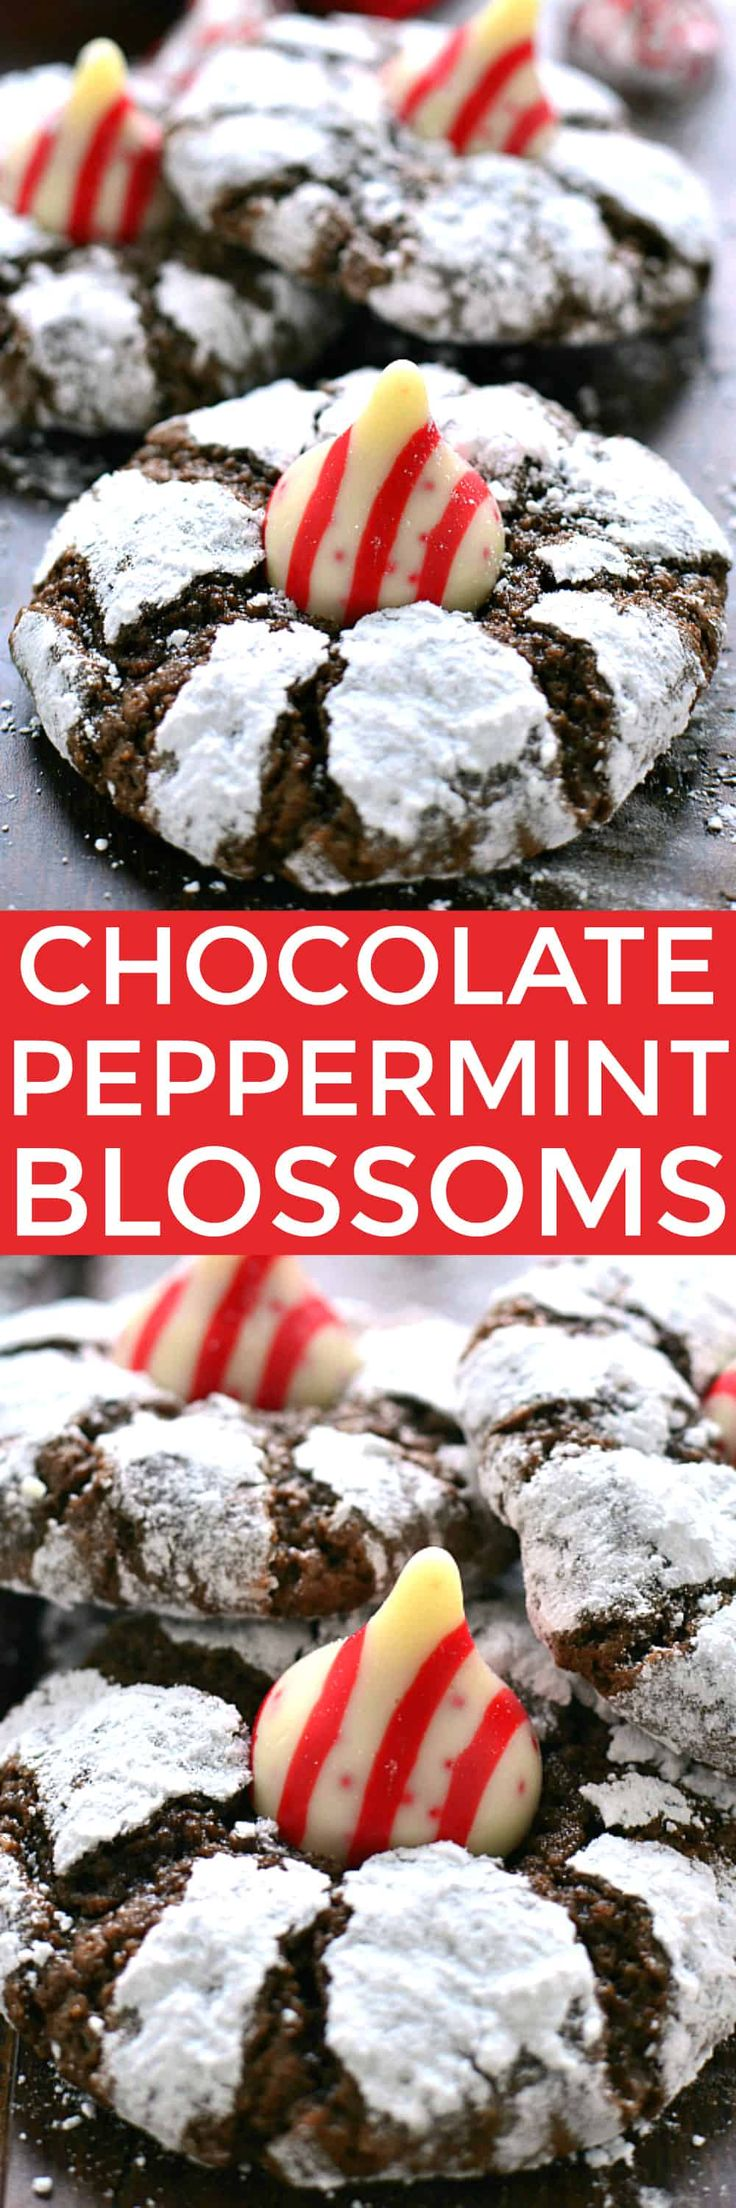 These Chocolate Peppermint Blossom Cookies are loaded with rich chocolate and peppermint and topped with a Candy Cane-flavored Hershey's Kiss. The perfect holiday cookies for mint (and chocolate) lovers everywhere!